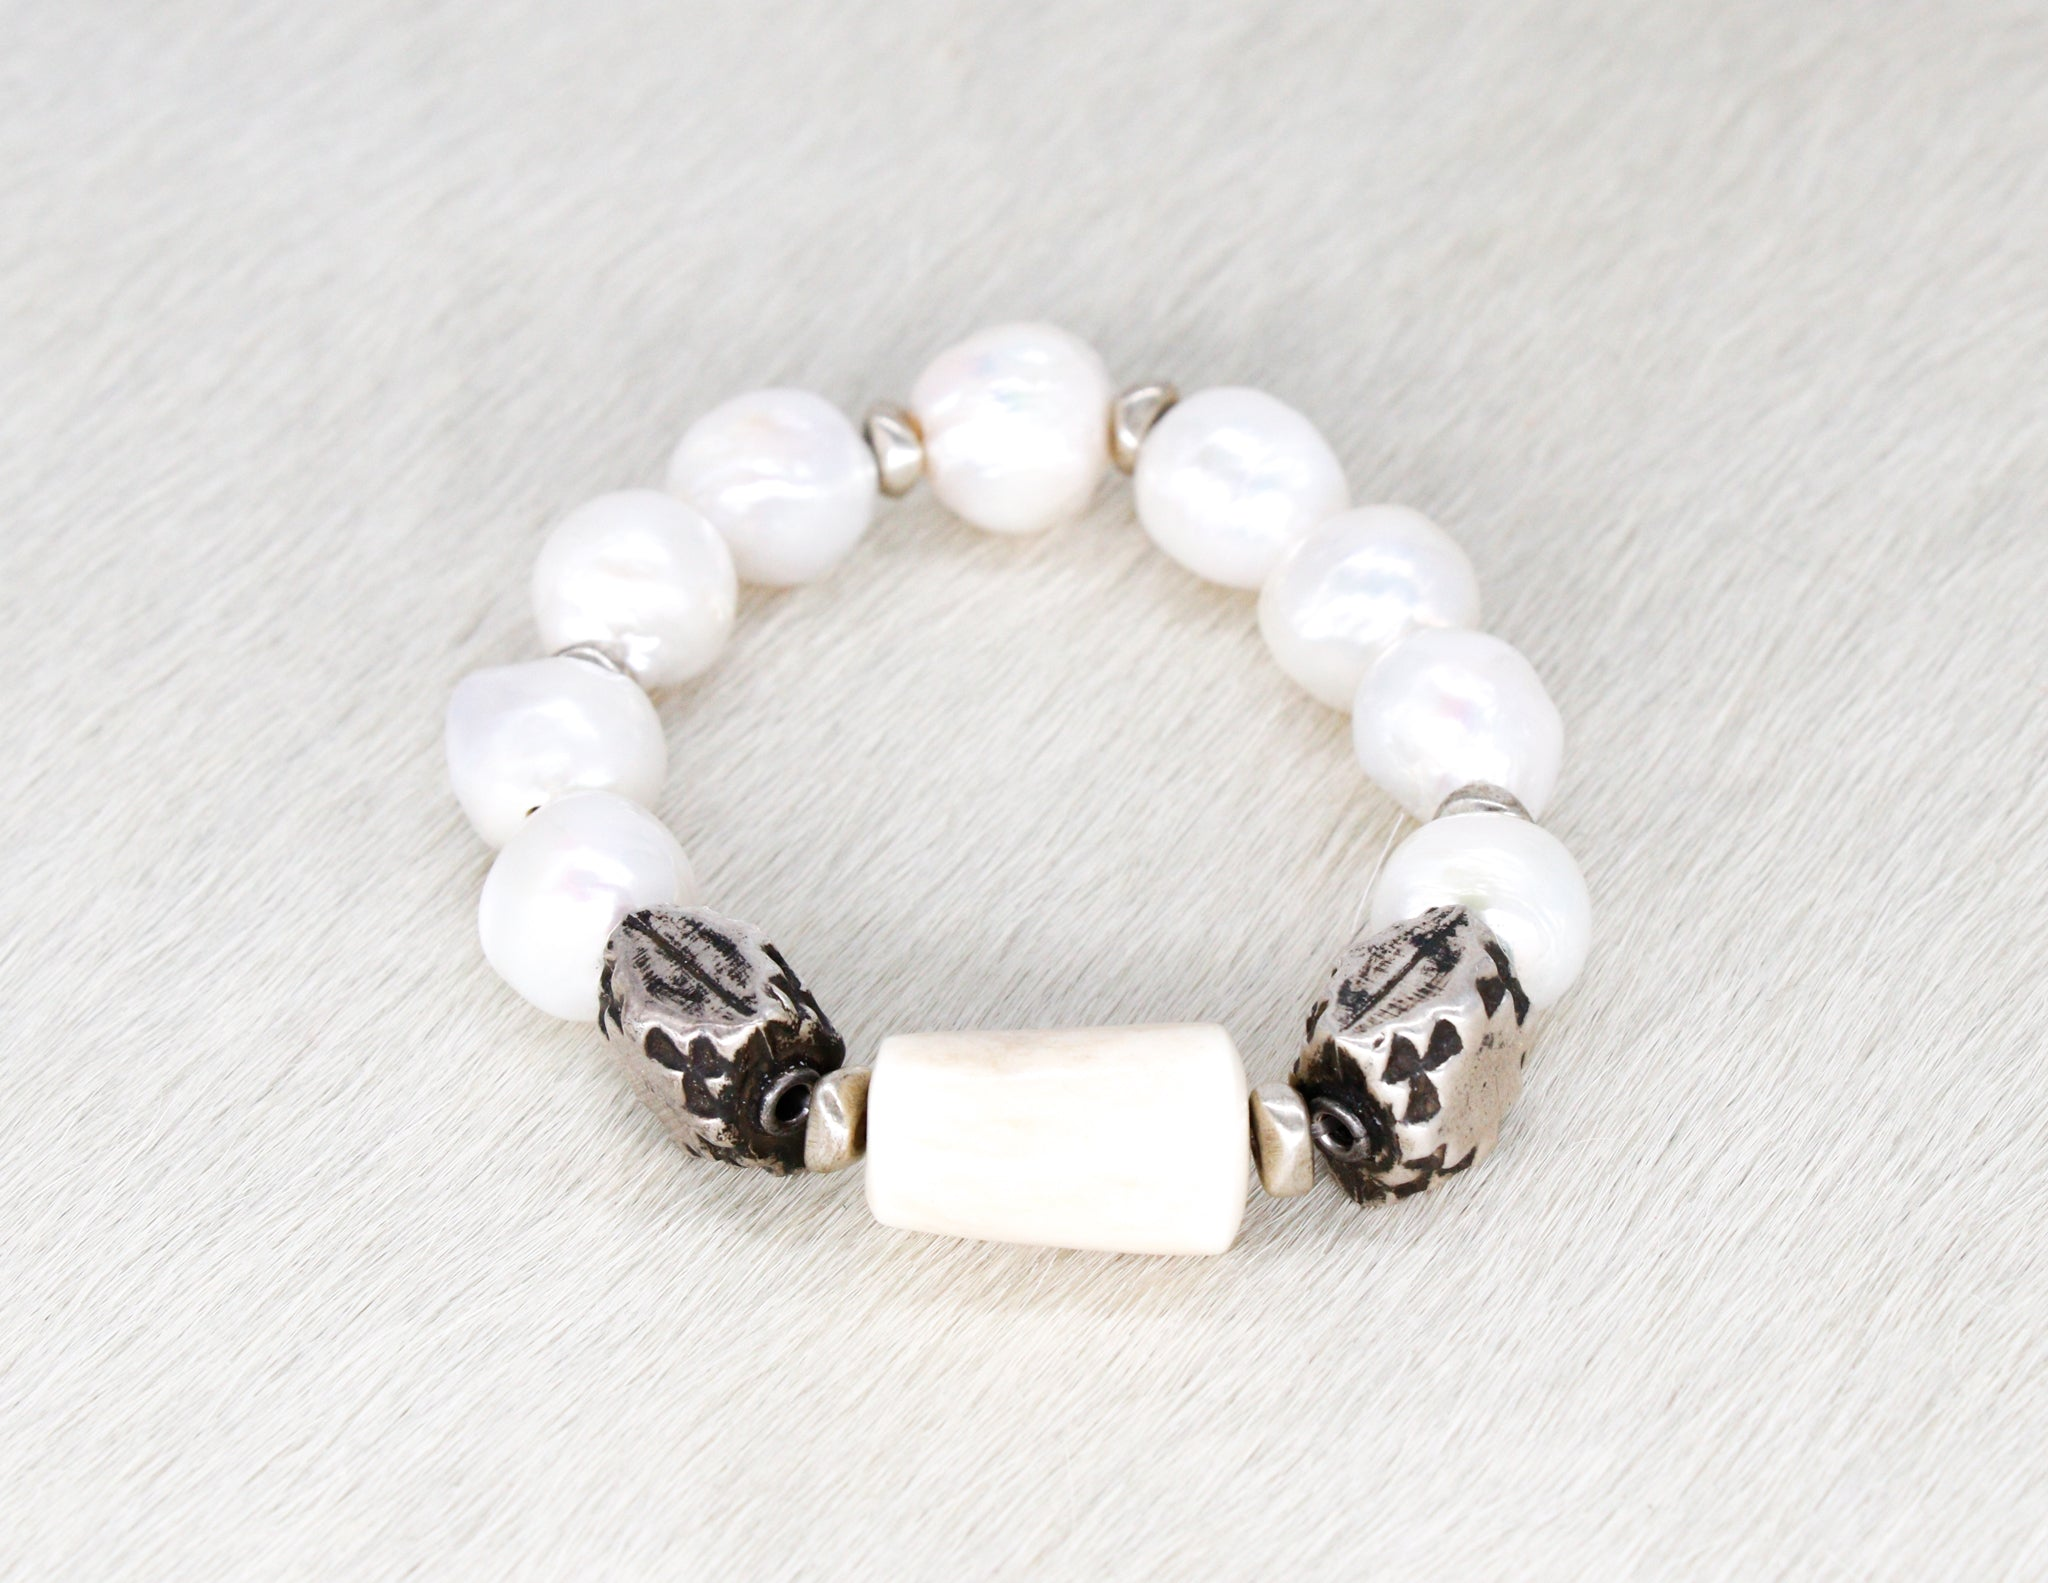 Pearl bracelet with silver